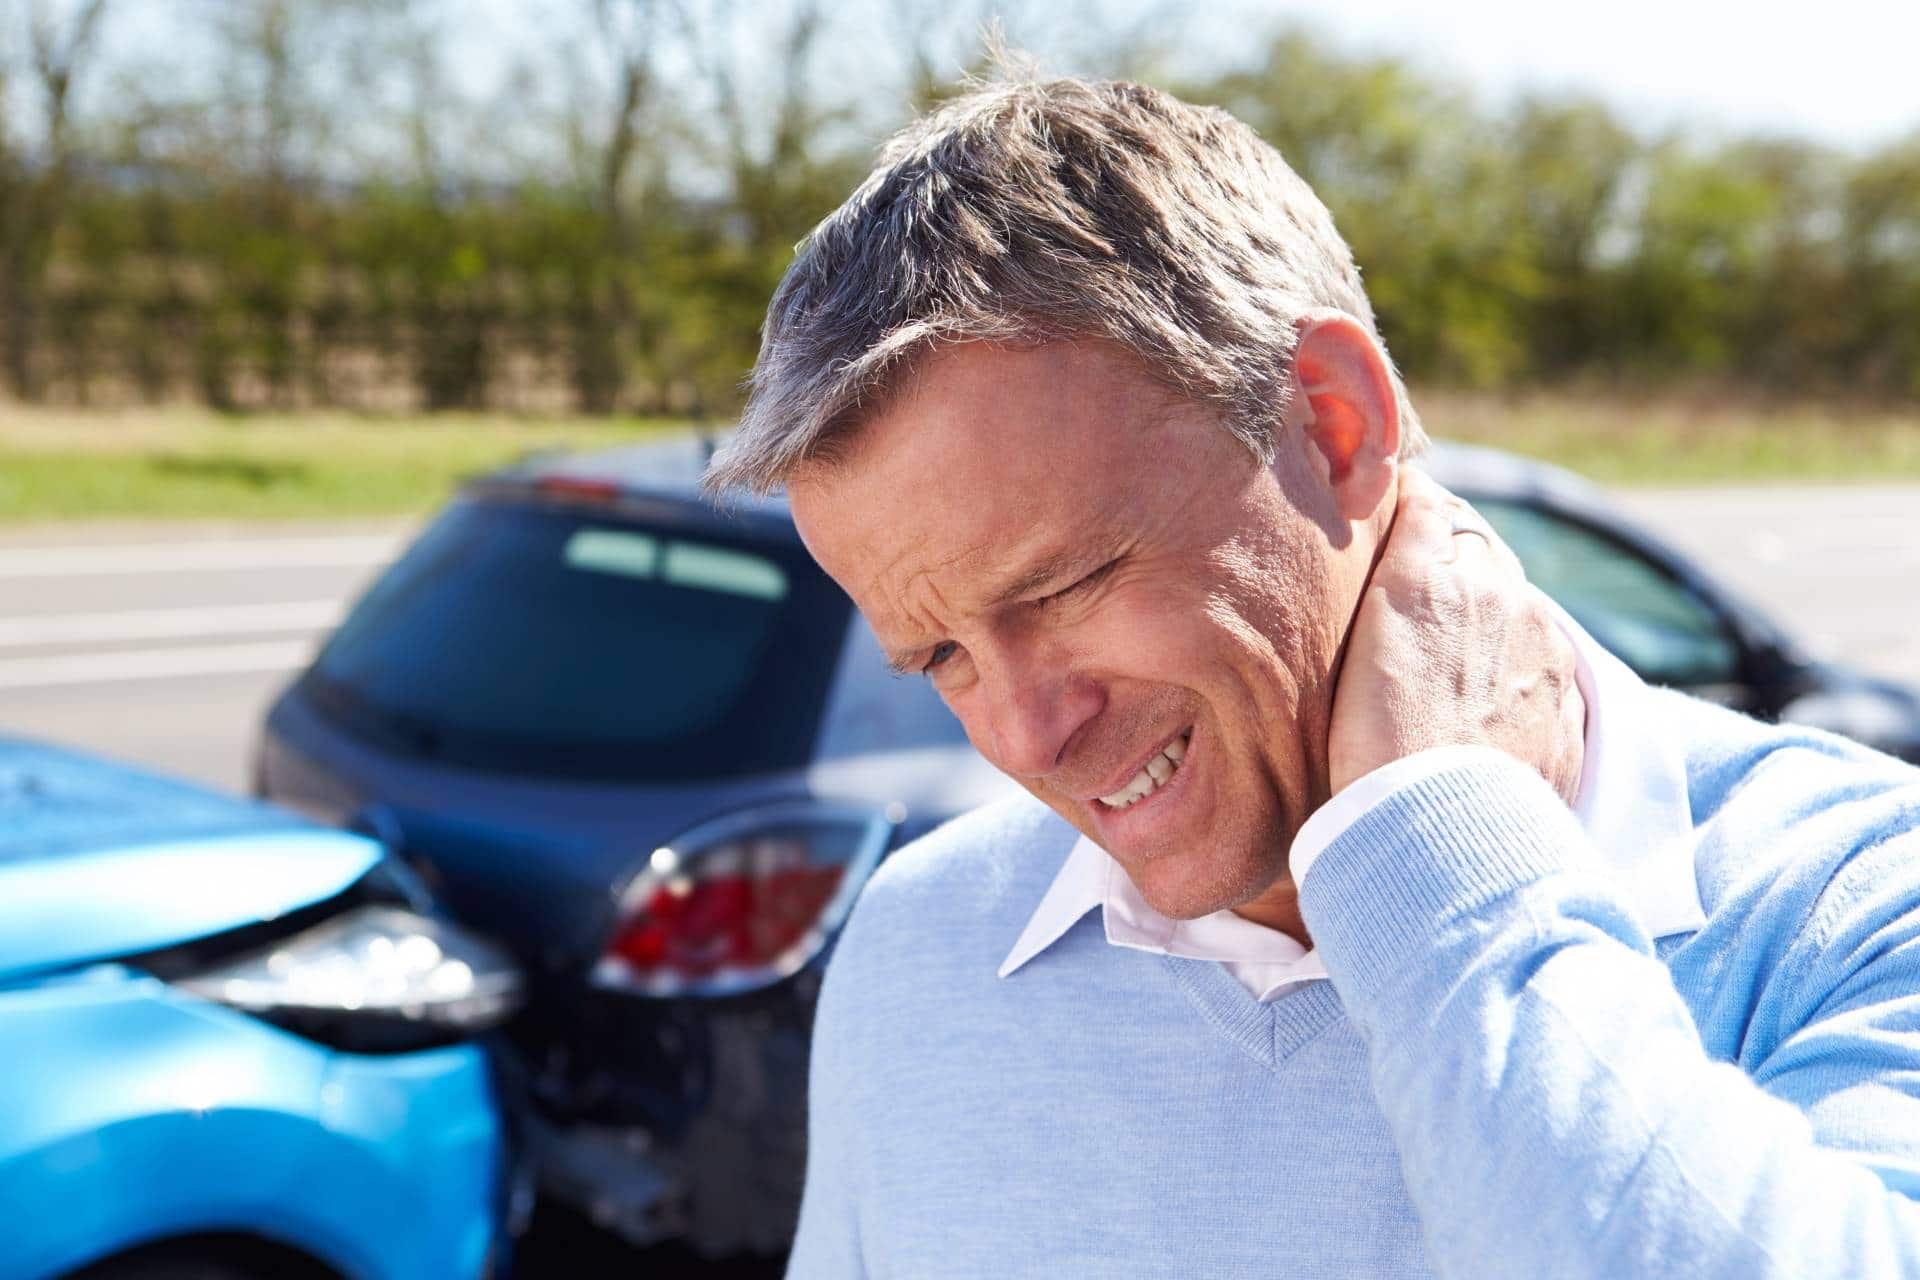 Hurt in an auto accident? Schedule a free consultation with our personal injury lawyers in Lithia Springs.